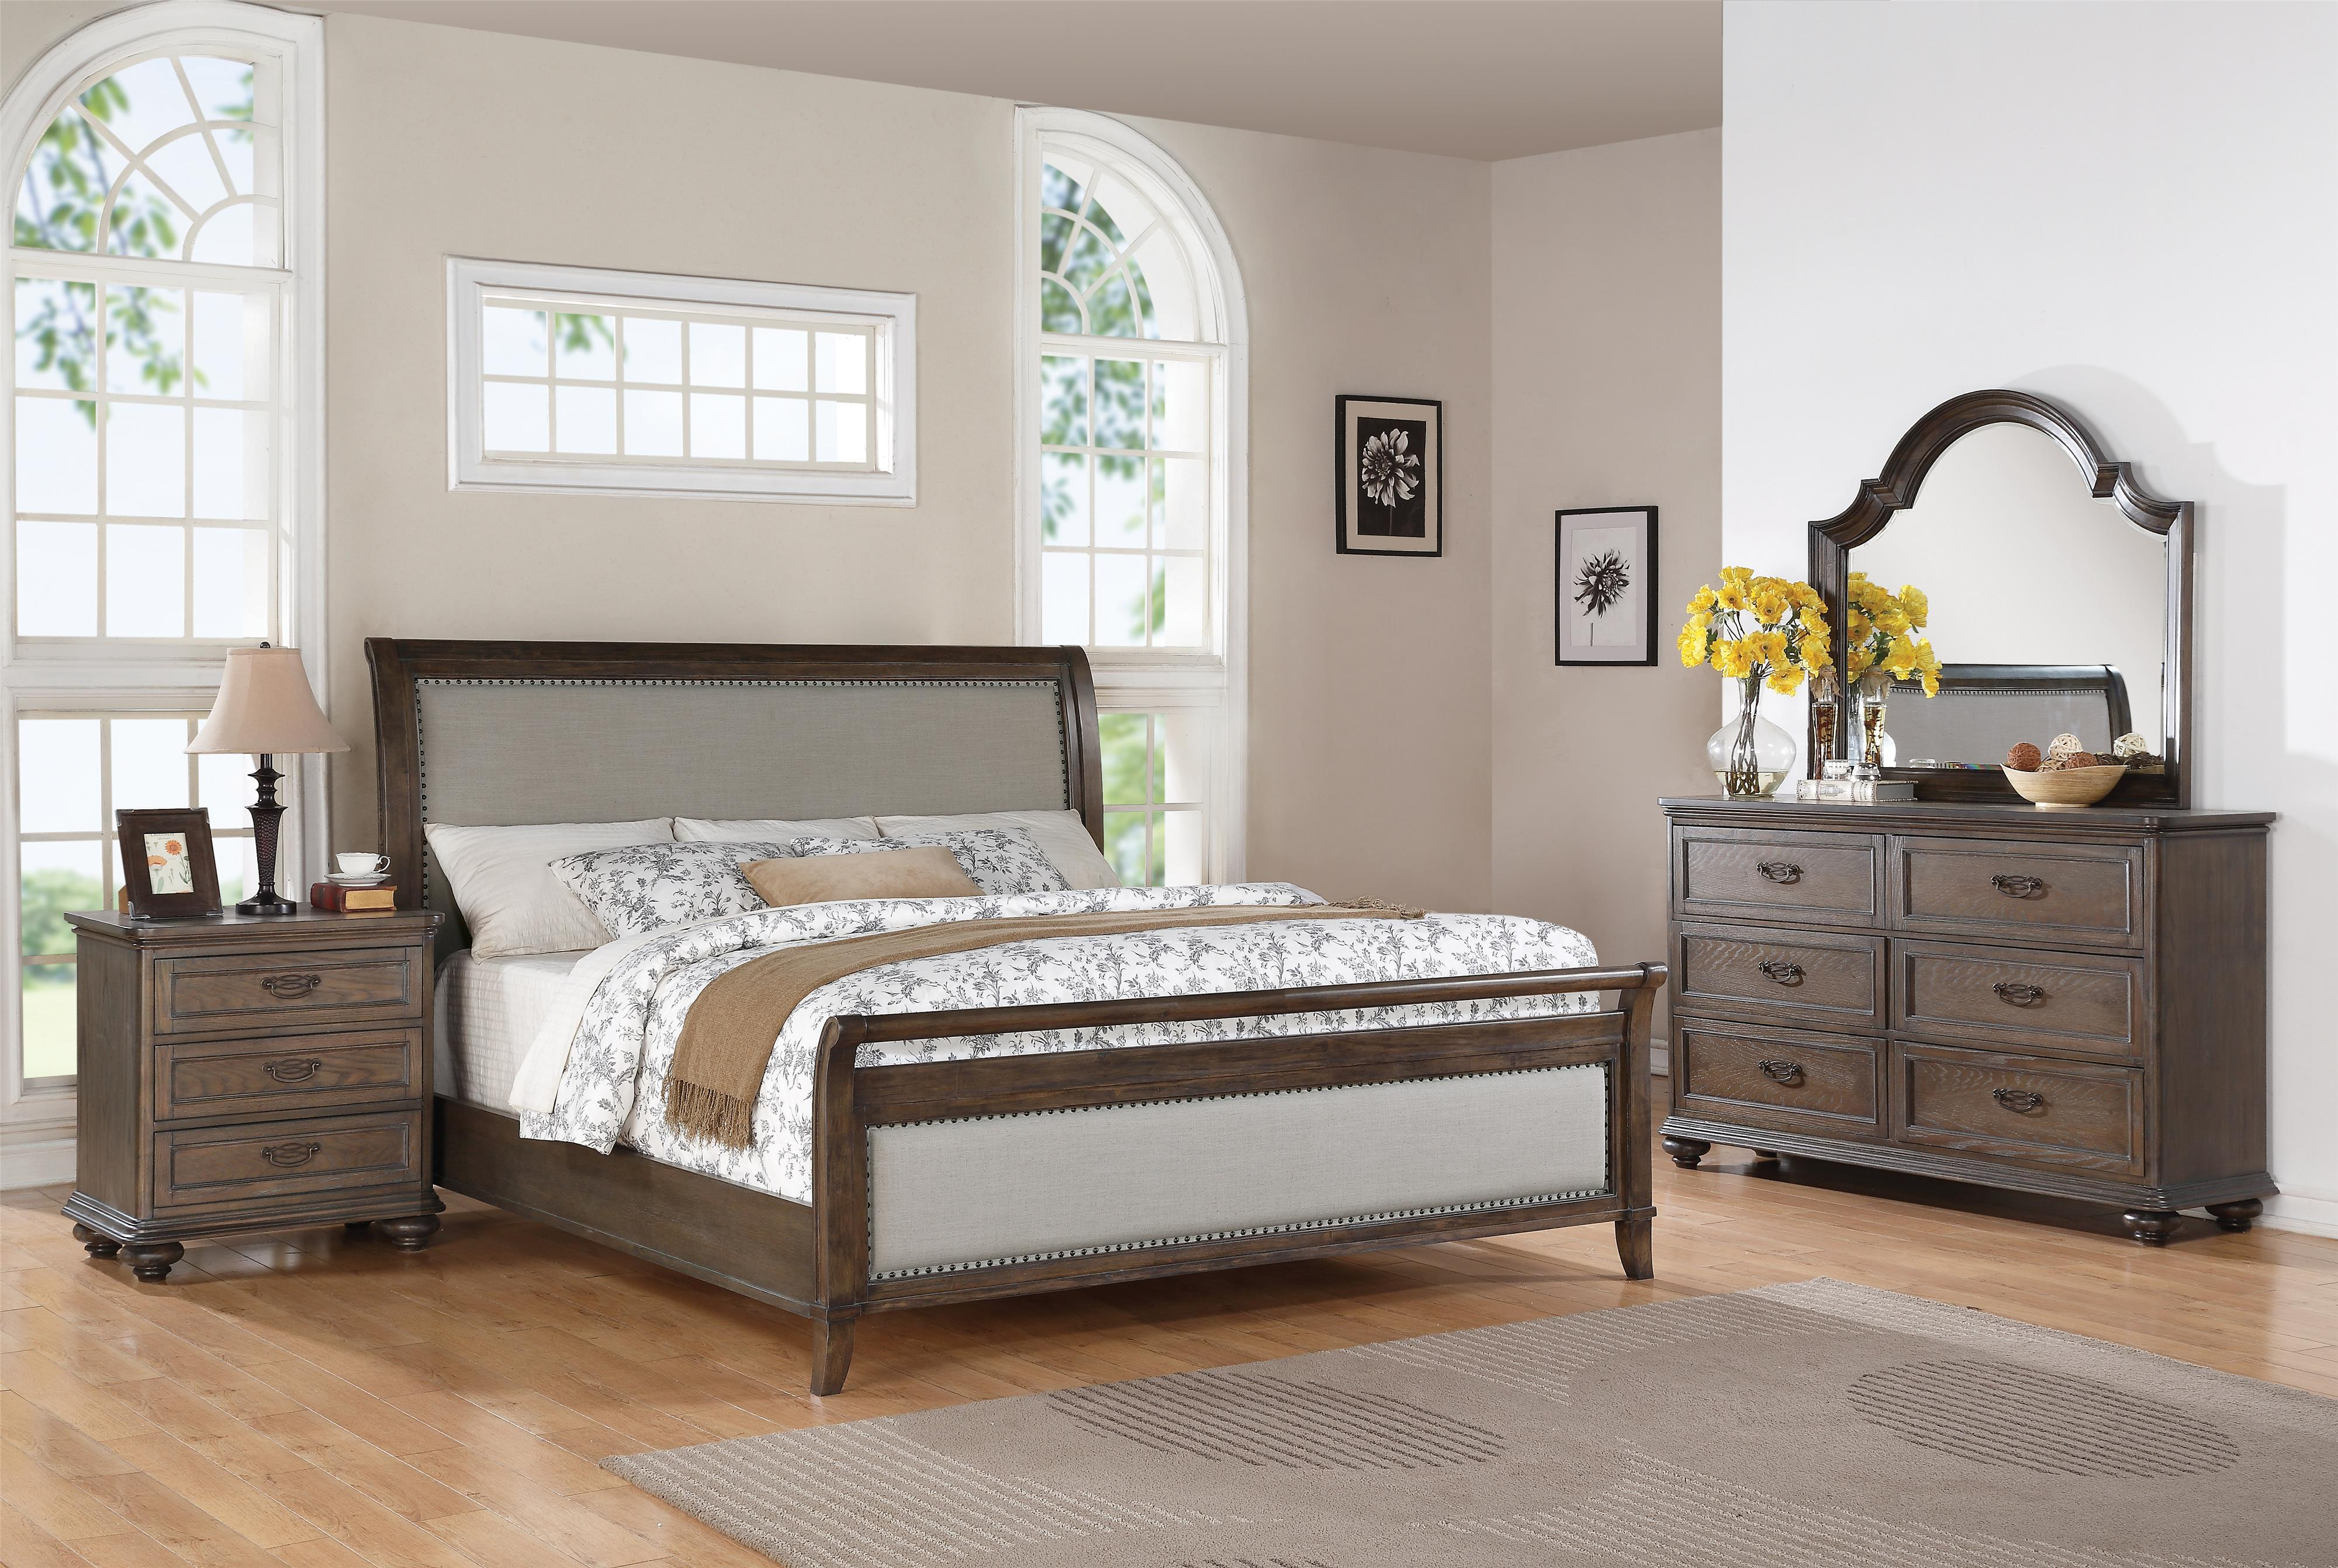 Riverside furniture belmeade queen sleigh upholstered bed Upholstered sleigh bed